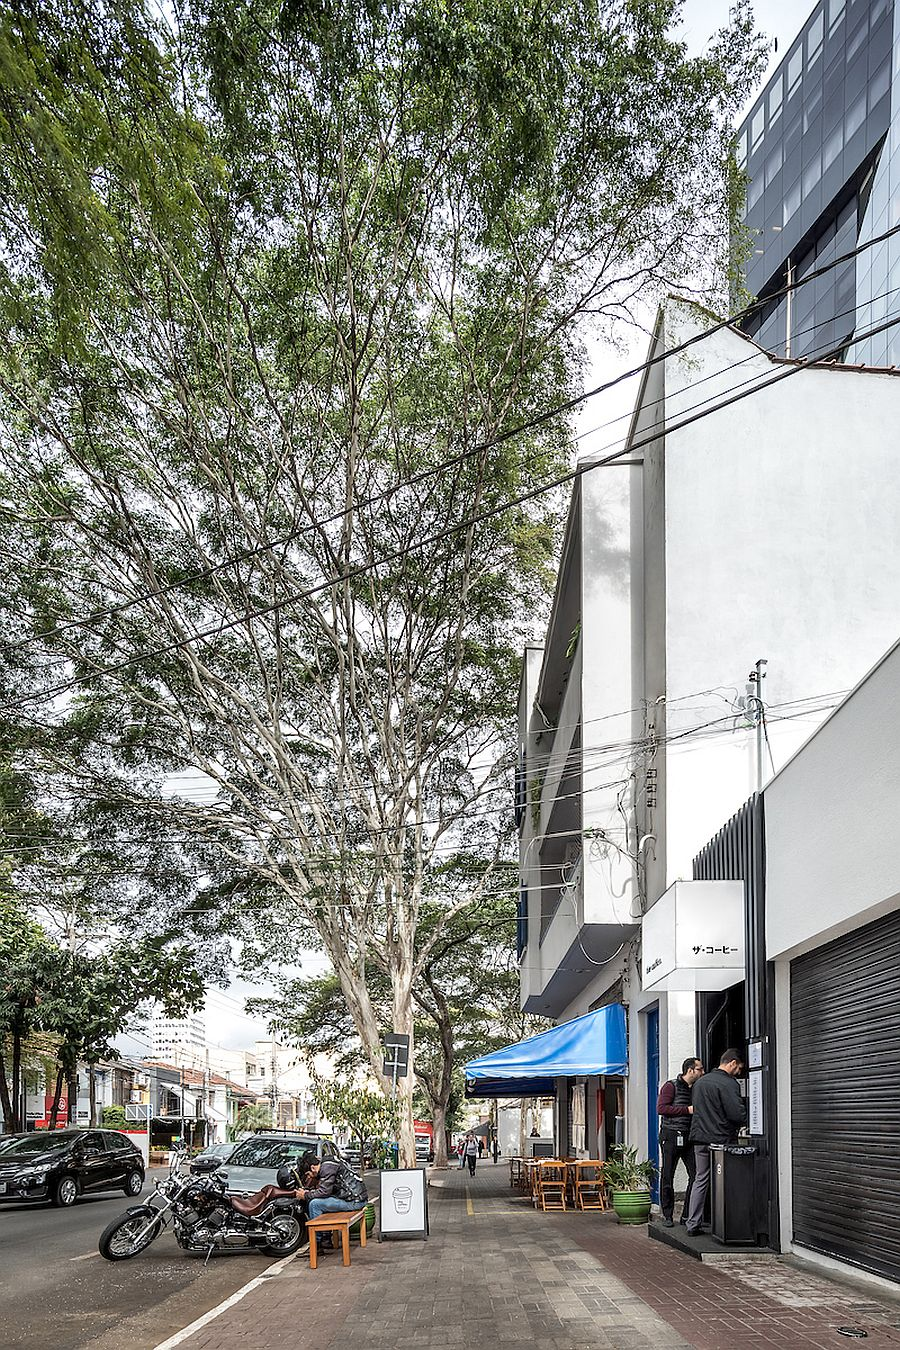 Design of the modern coffee shop in Brazil maxmizes space in style